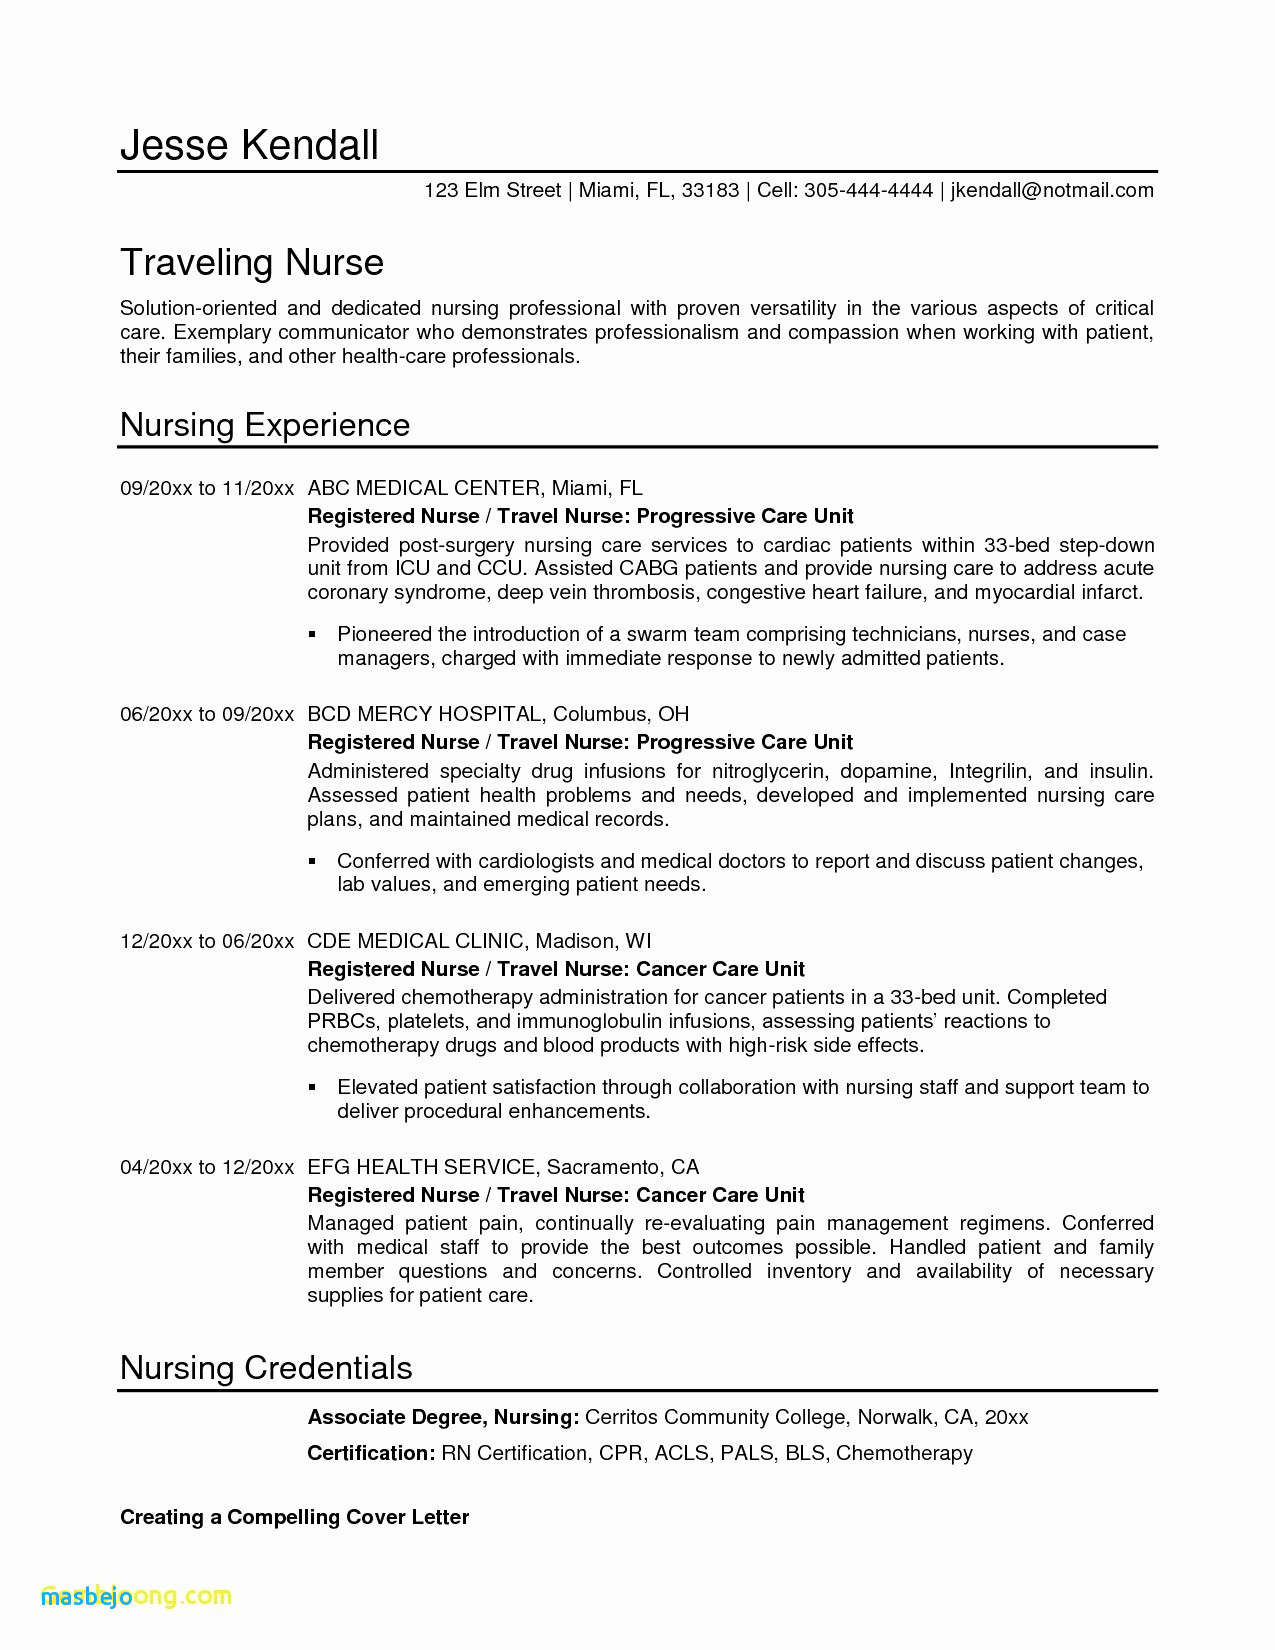 Nursing Resume Template Free Download - Awesome I Need A Free Resume Template